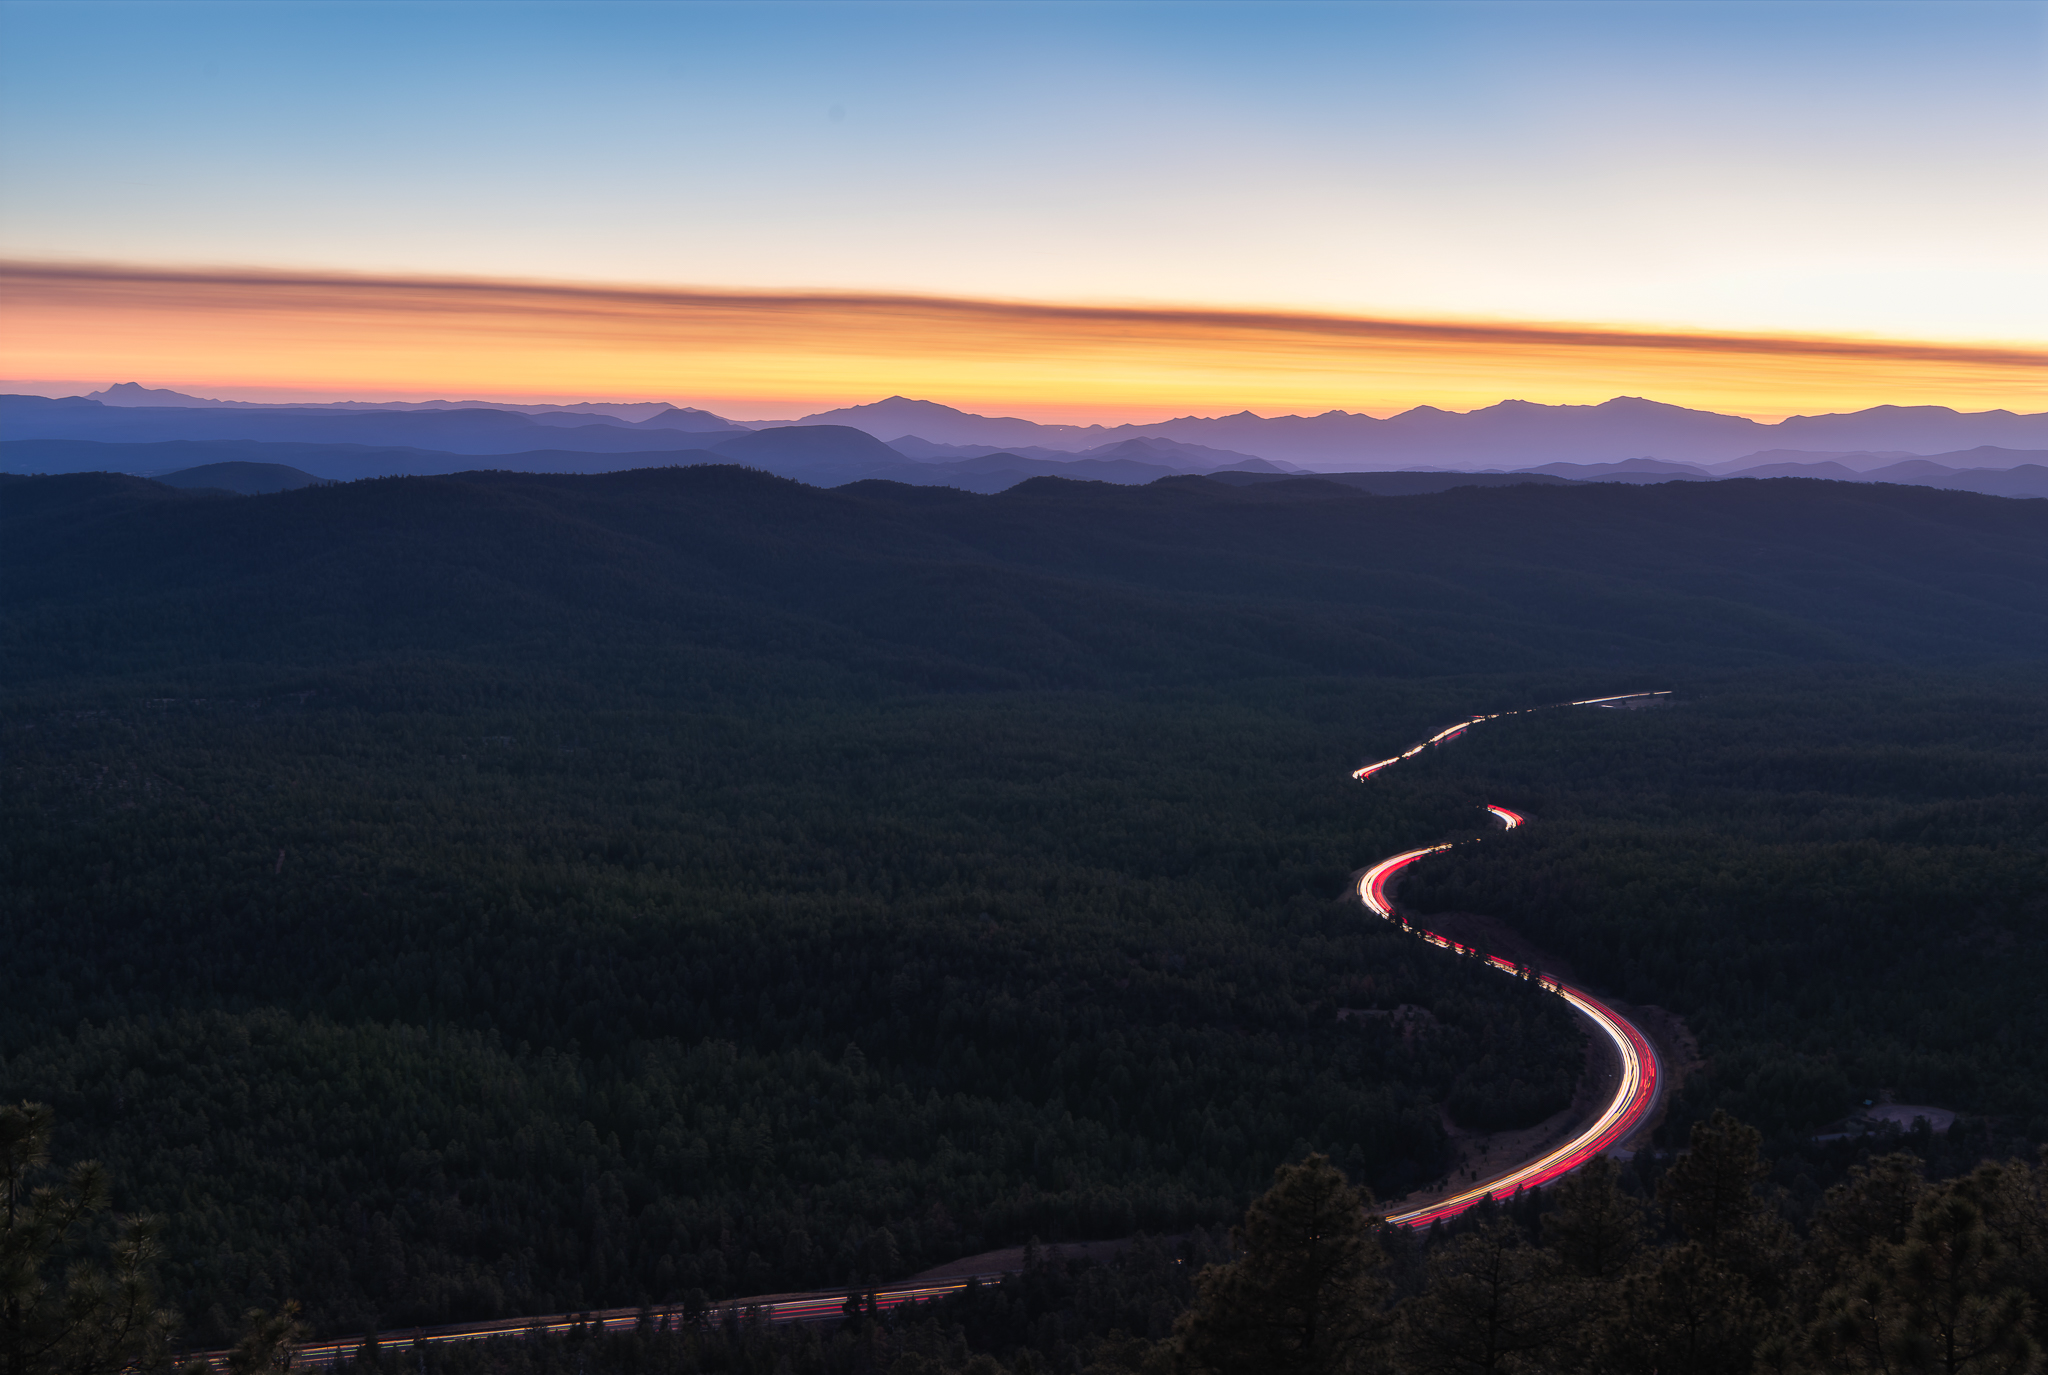 Sunset at the Mogollon Rim, Arizona